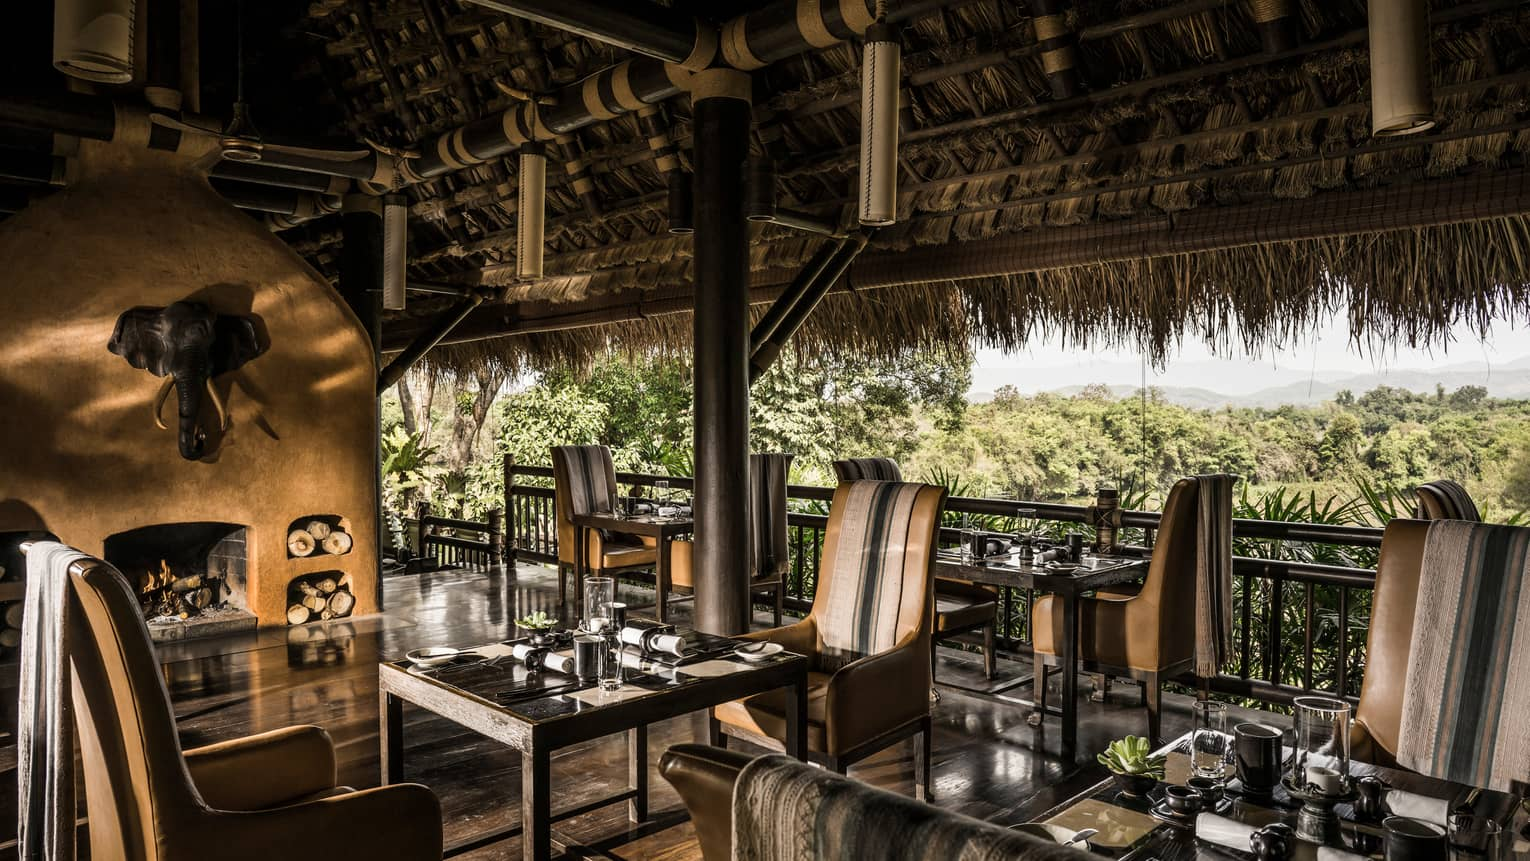 Dining tables, leather chairs in wood open-air restaurant under thatched roof